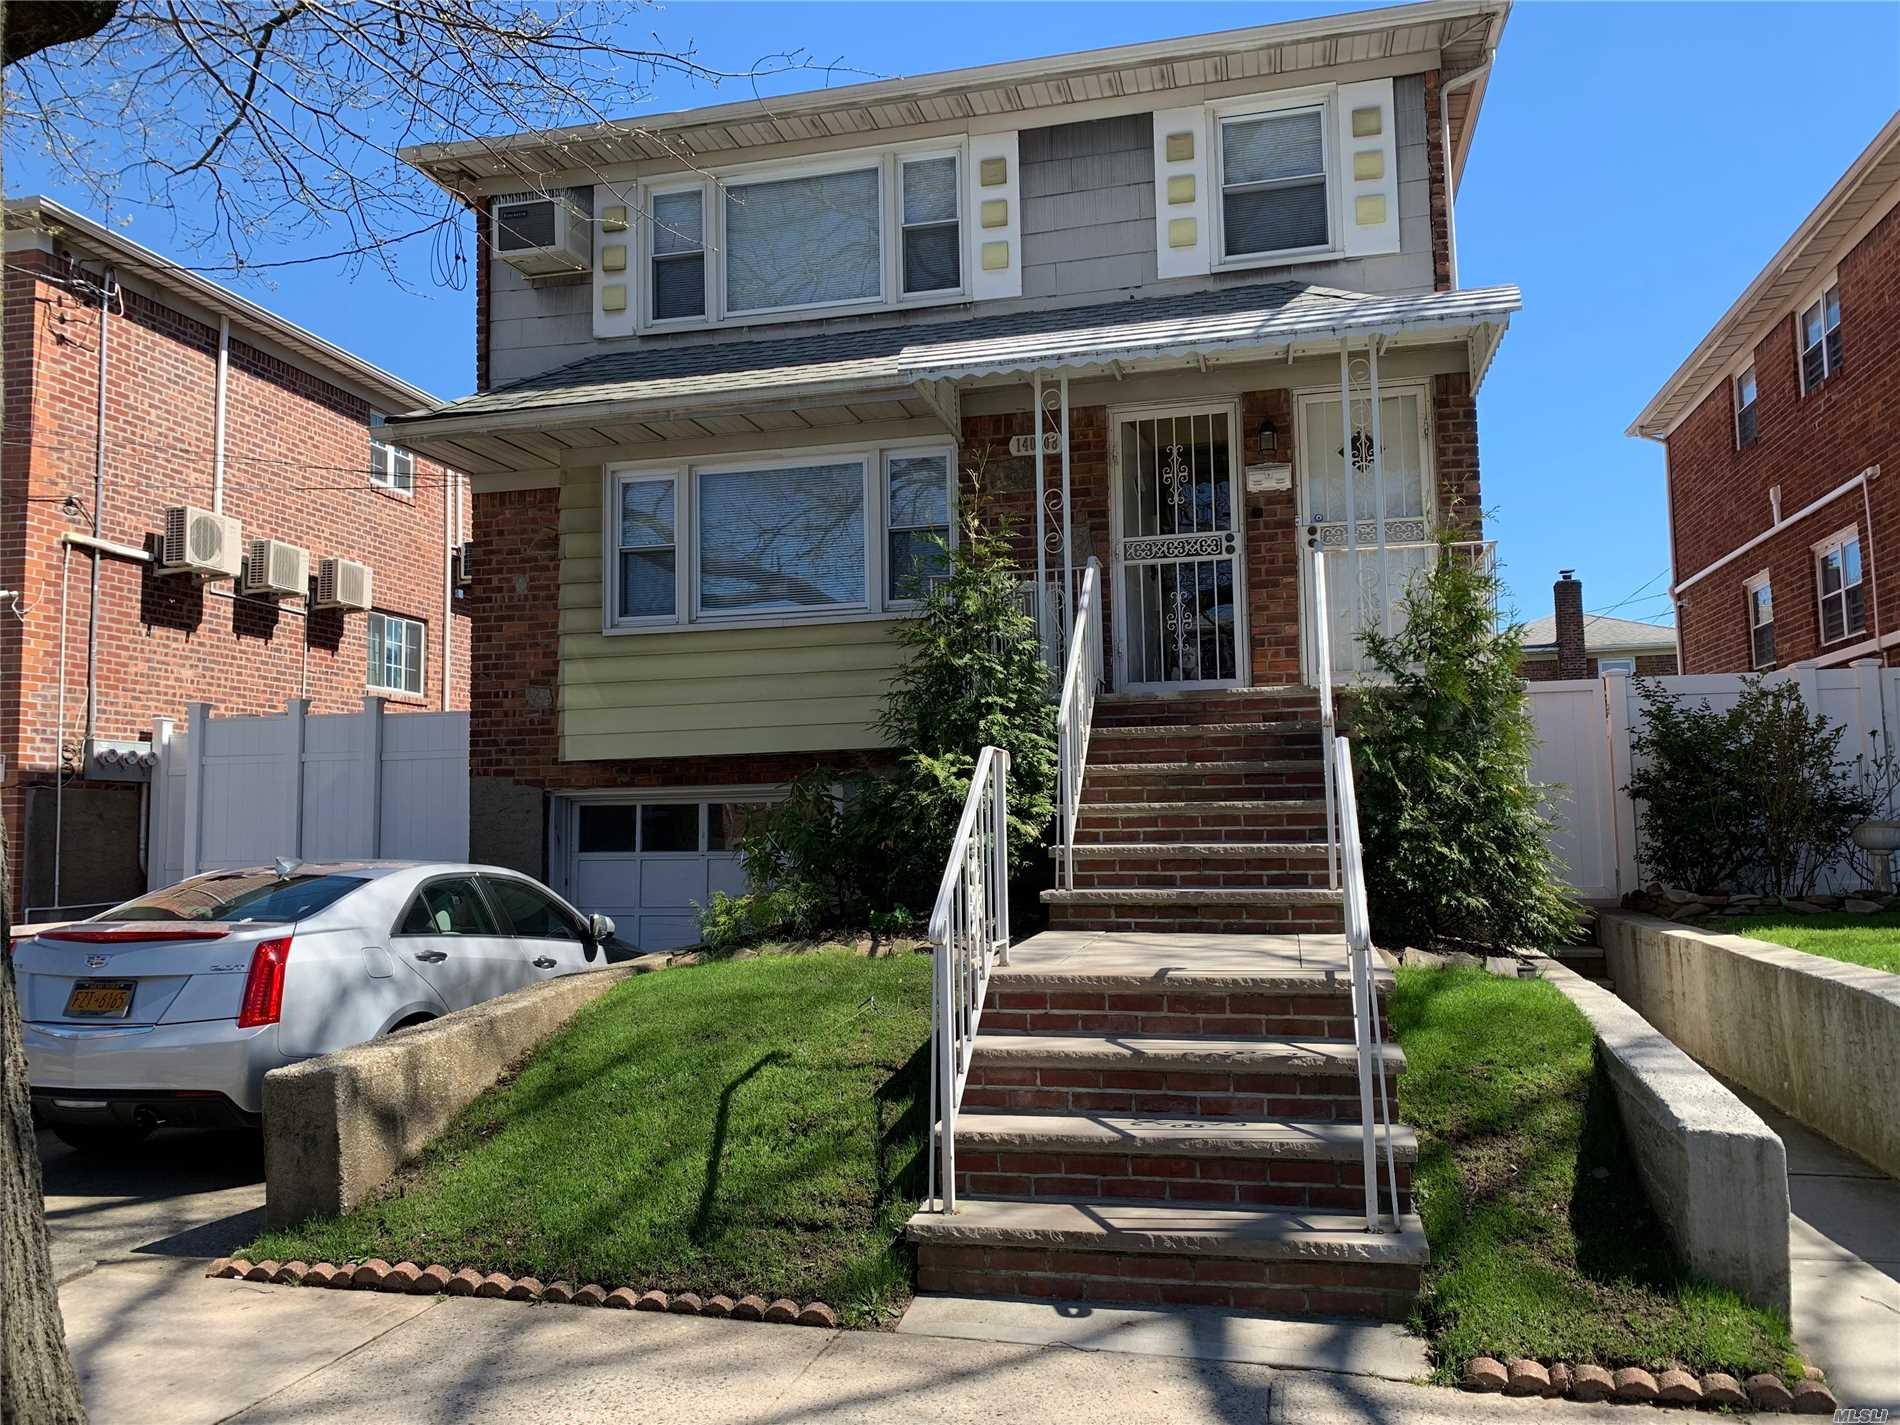 Large Detached 2 Family Home in the Heart of Flushing! In excellent condition, with updated kitchens and bath and a fully finished above grade basement. Makes the perfect new home or investment property! Great location, just blocks away from beautiful Kissena Park, shopping and transportation. This Home is a must see! Don't miss out on this wonderful opportunity! Though believed accurate, all info must be independently verified, Listing Agent & Broker are not responsible for any inaccuracies.